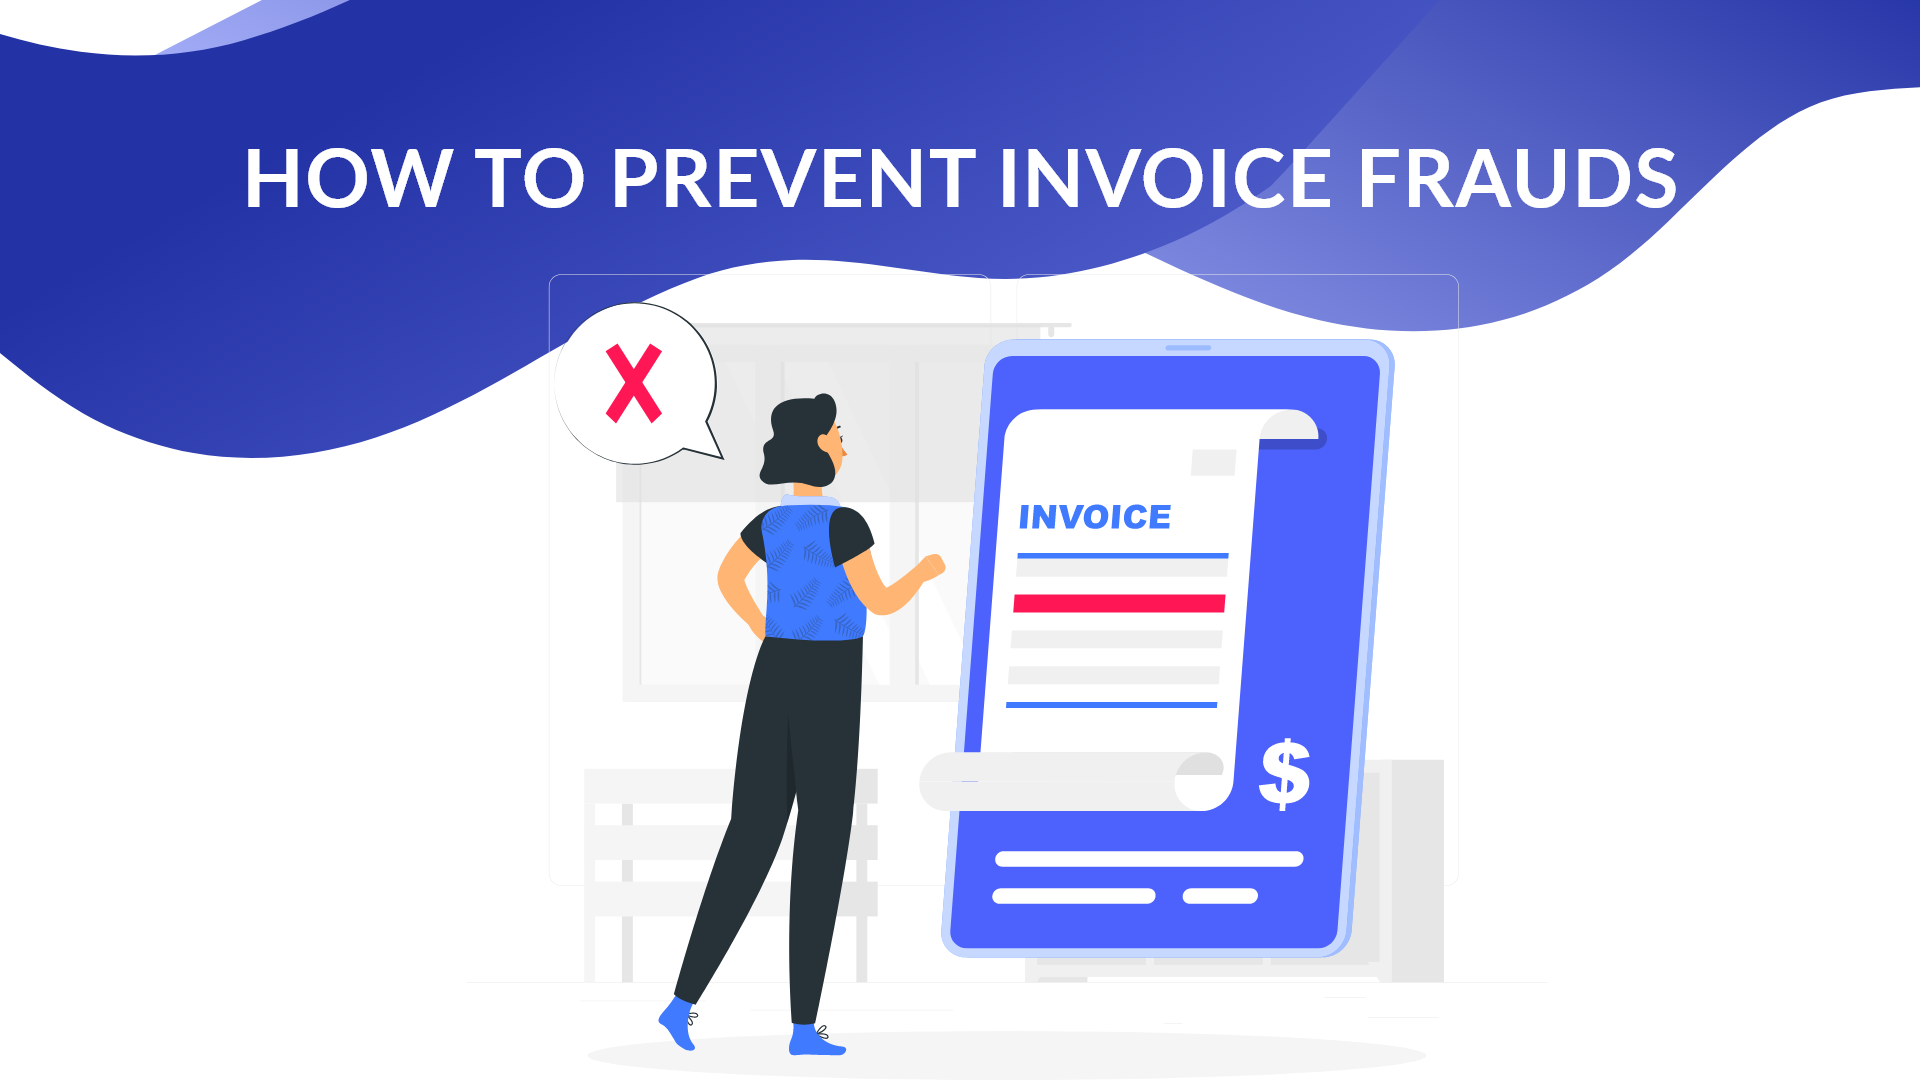 How to Prevent Invoice Frauds